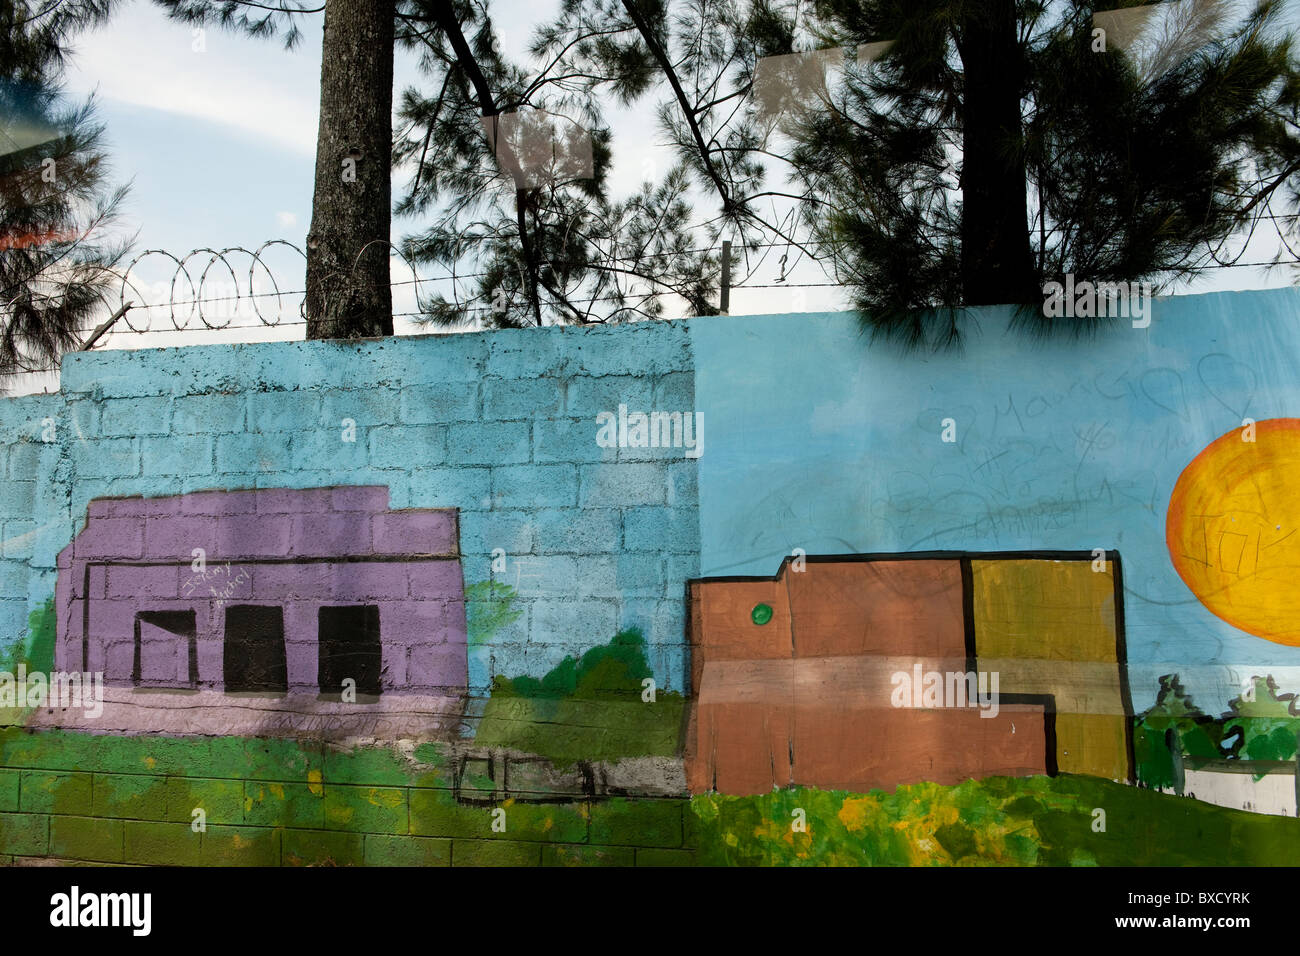 Painting of houses and buildings on concrete cinderblock wall, with ...